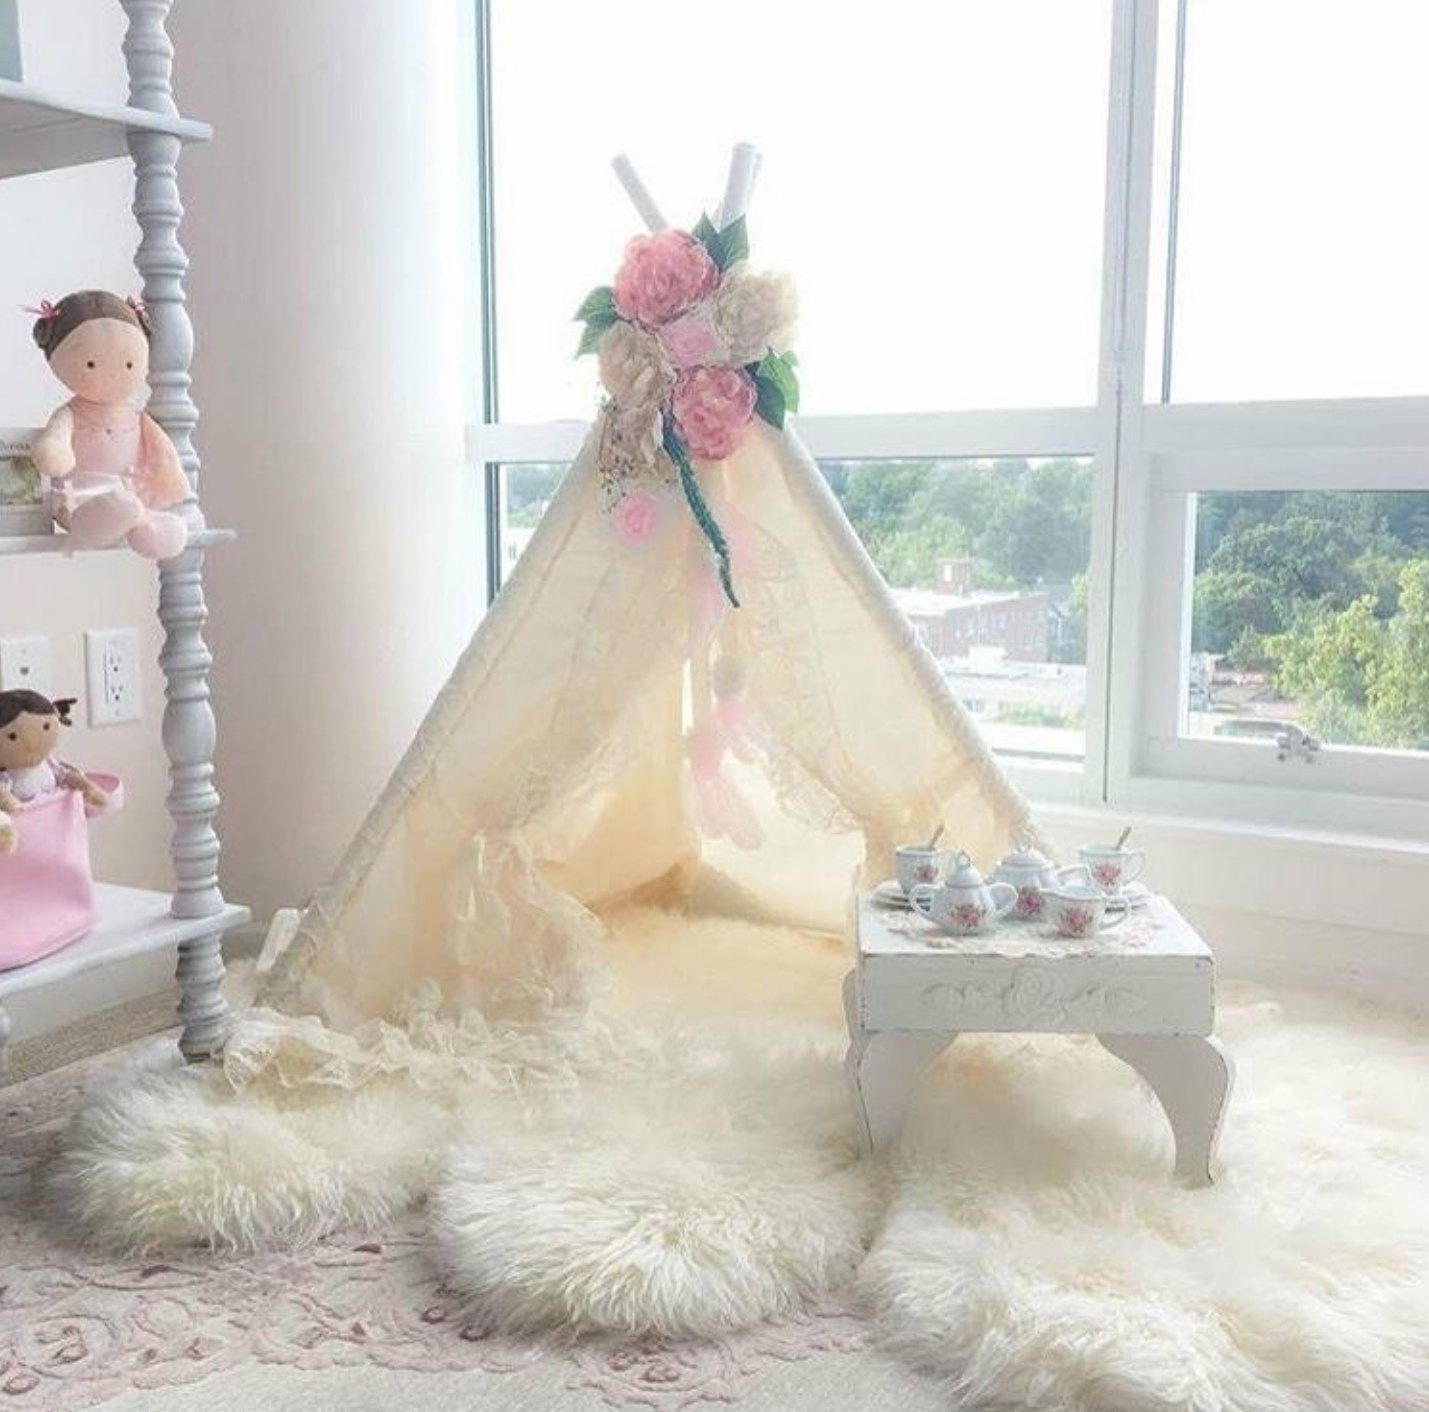 teepee teepee with lace teepee tent toddler teepee teepee with flowers - BABY BIANCA COMBO & teepee teepee with lace teepee tent toddler teepee teepee with ...